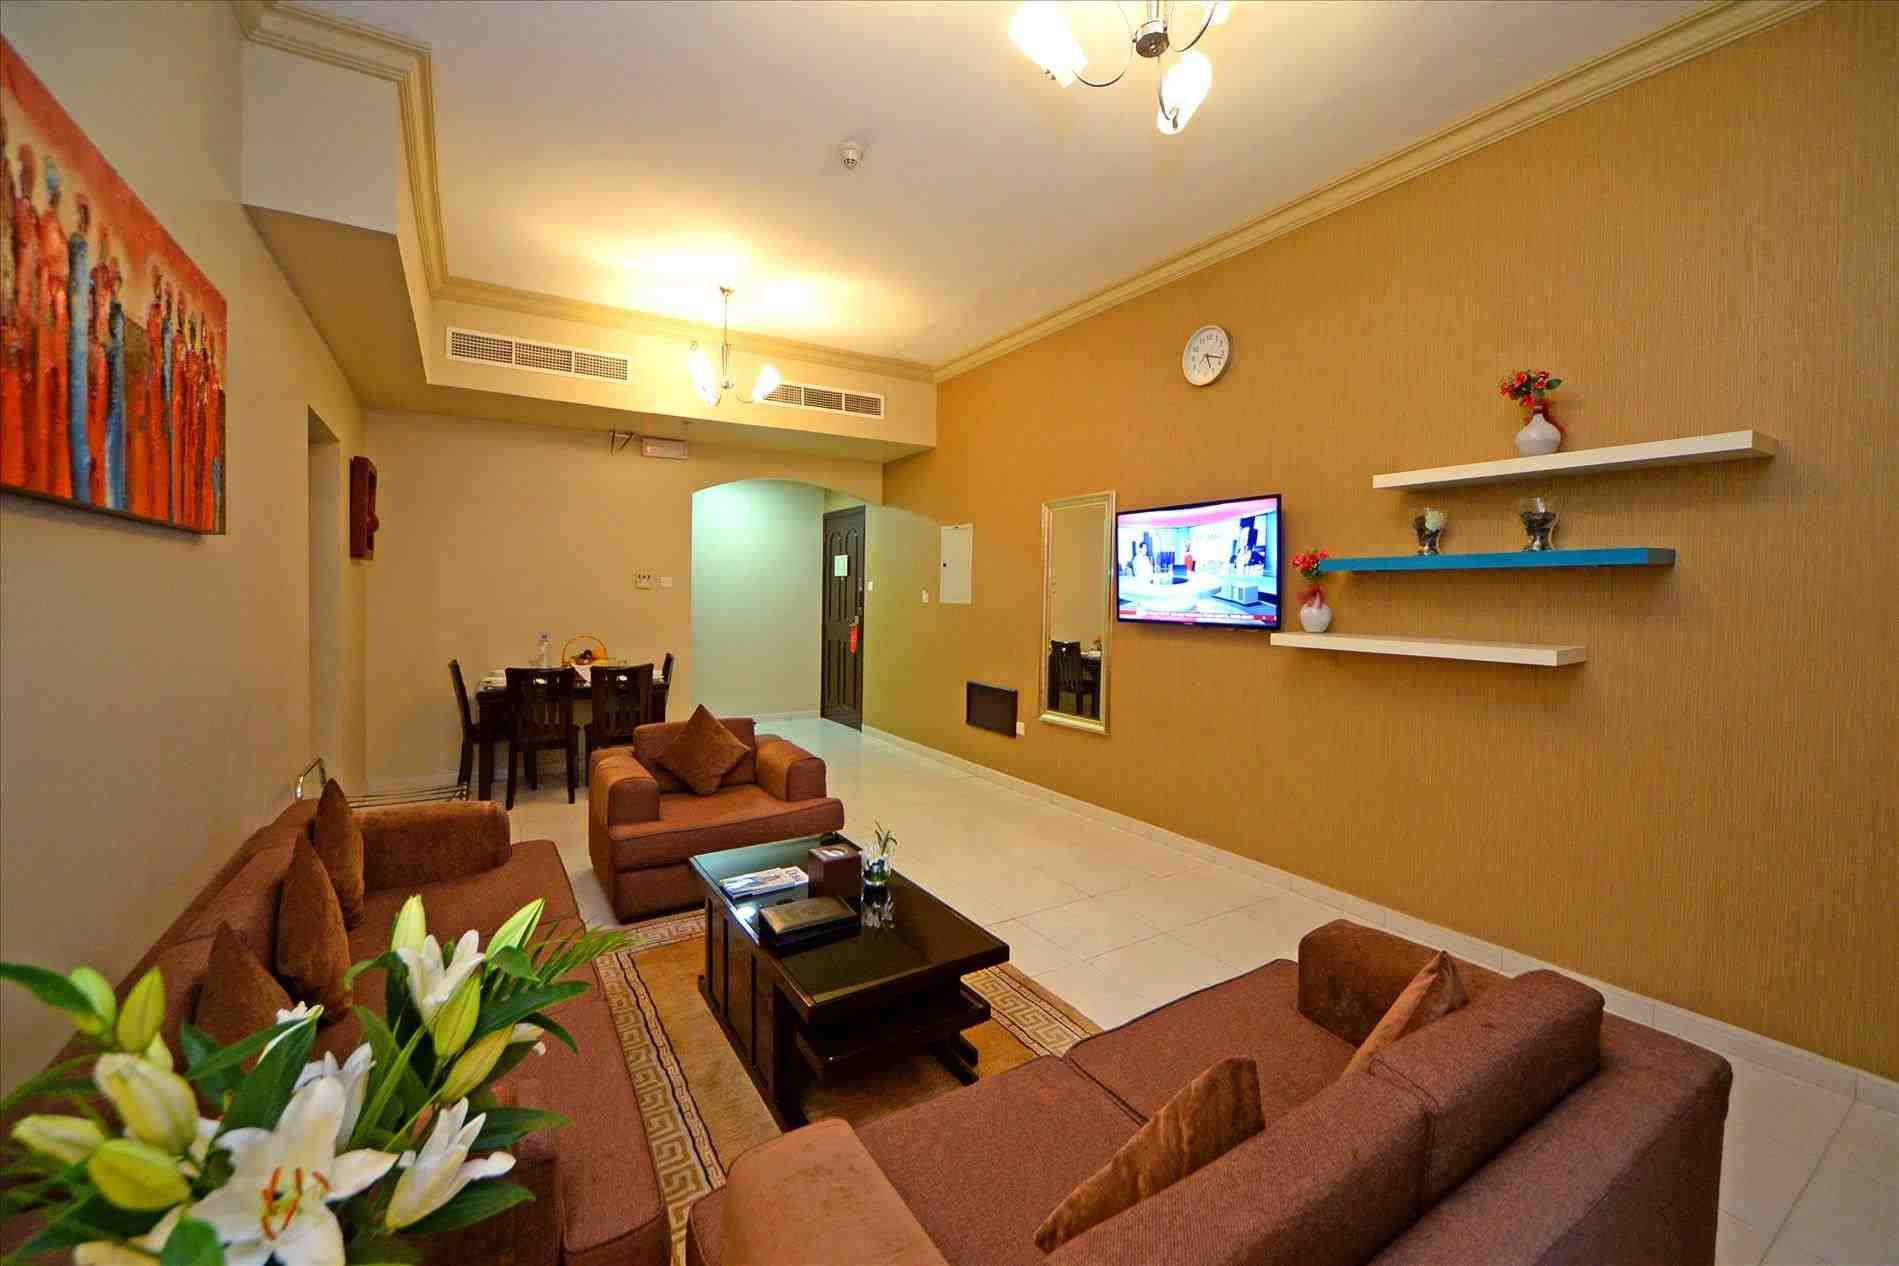 Emirates apartment one palm simplex apartment click on the images to enlarge